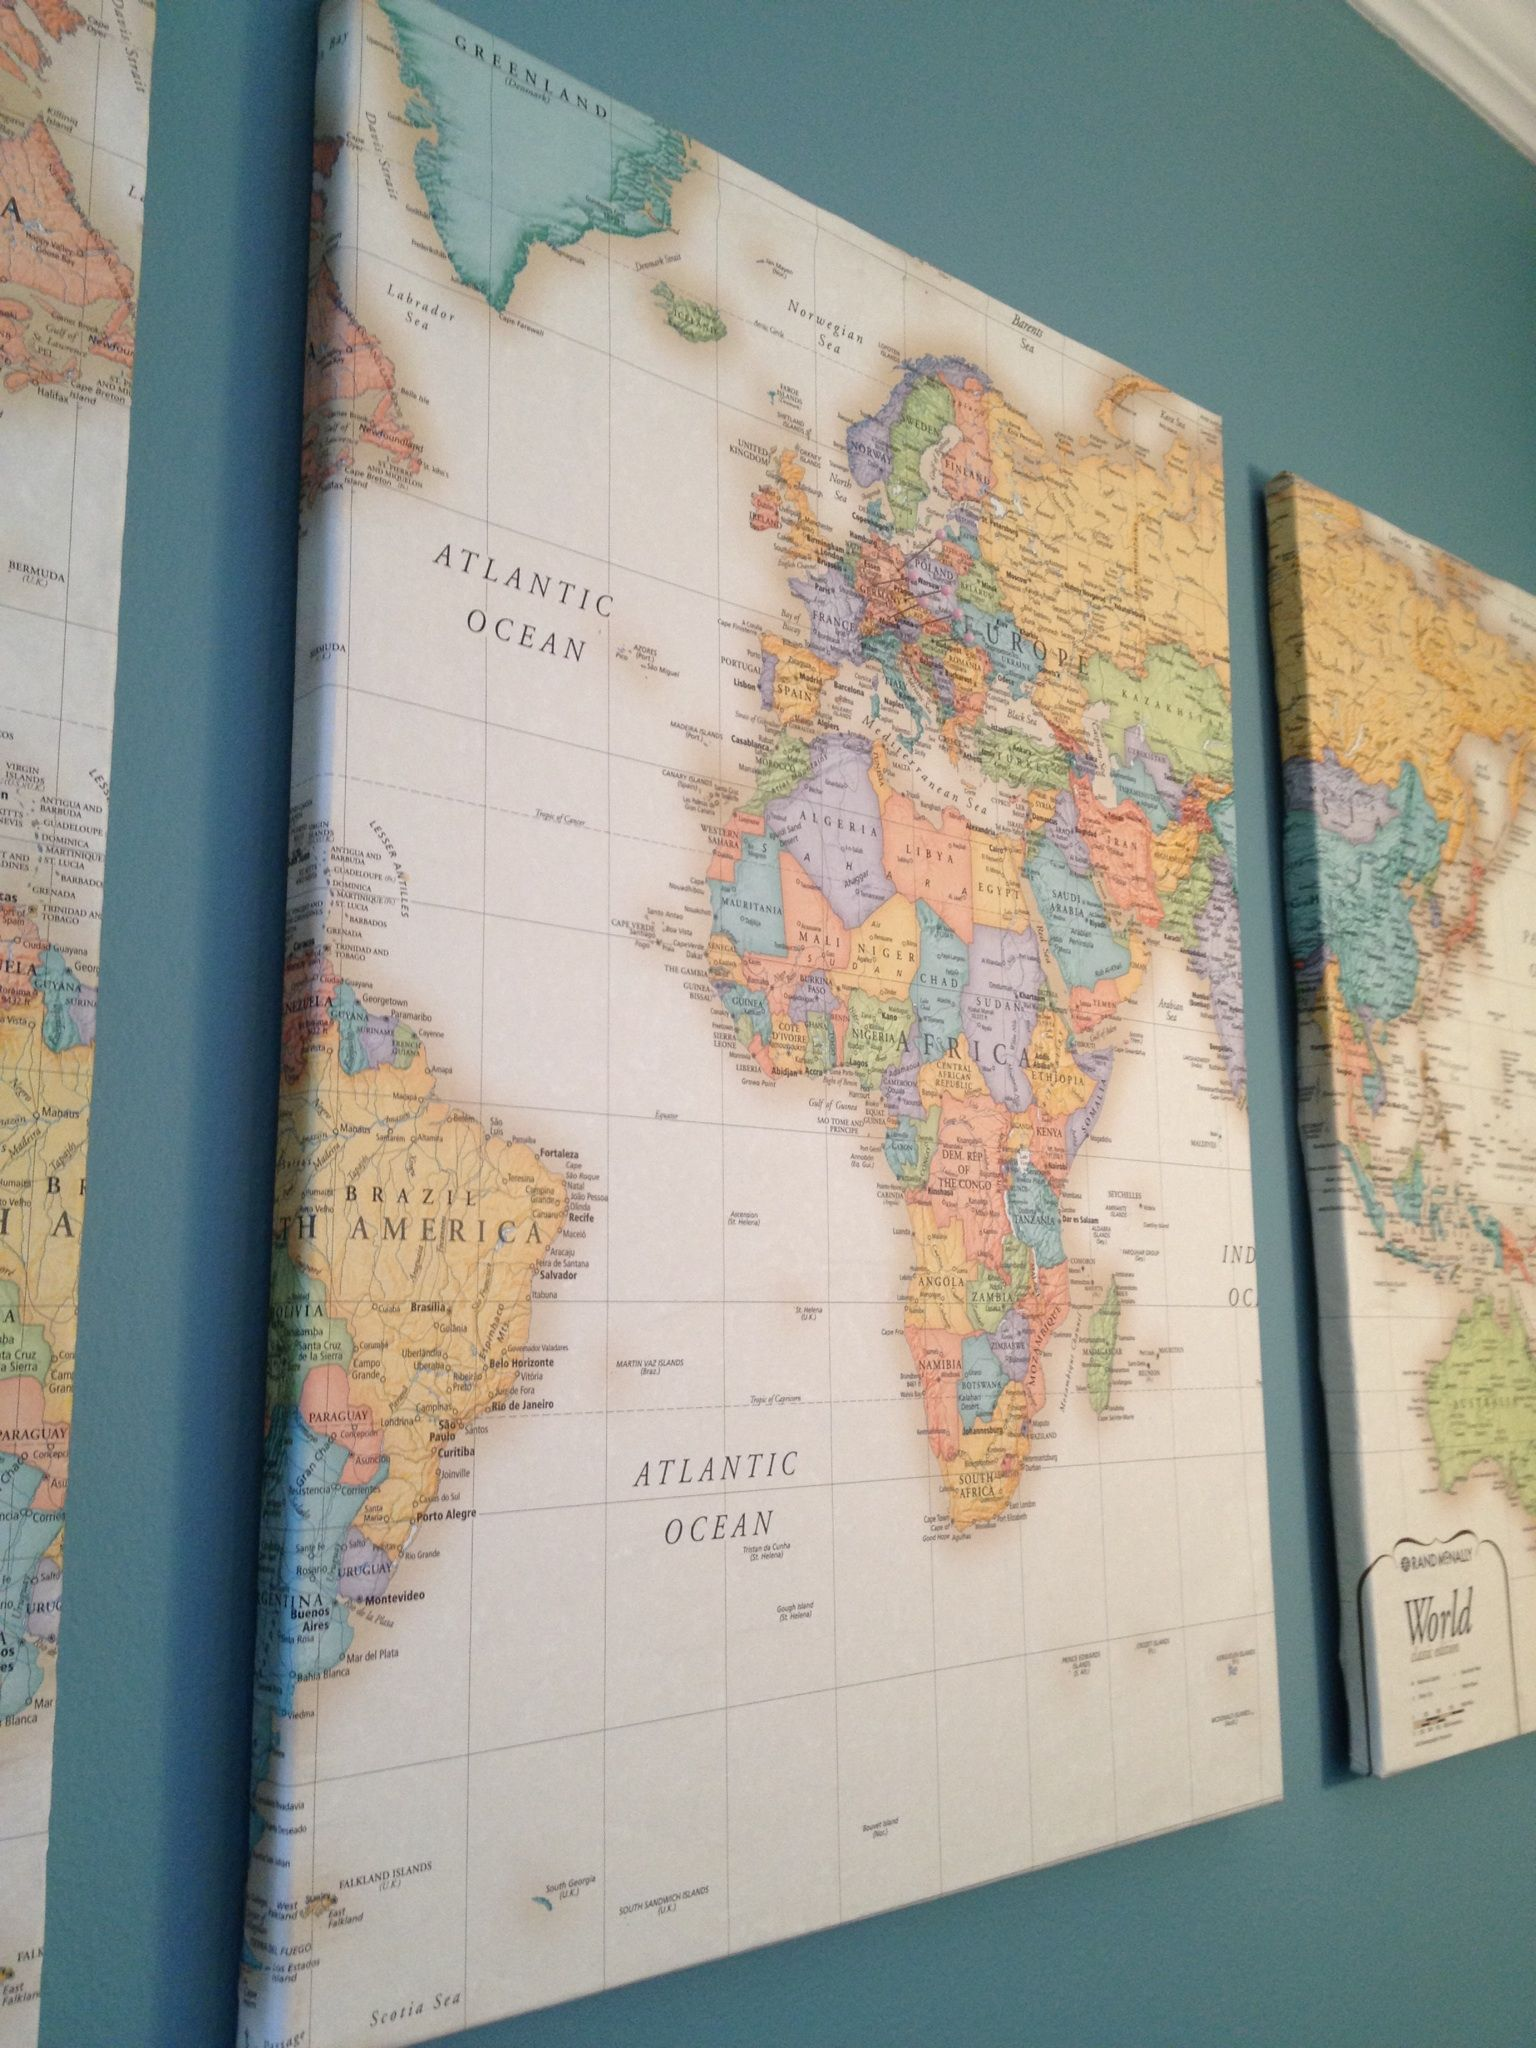 How To Make Put A Map On Canvas For Art What About Using Pins Or - Can you put a wall decal on canvas